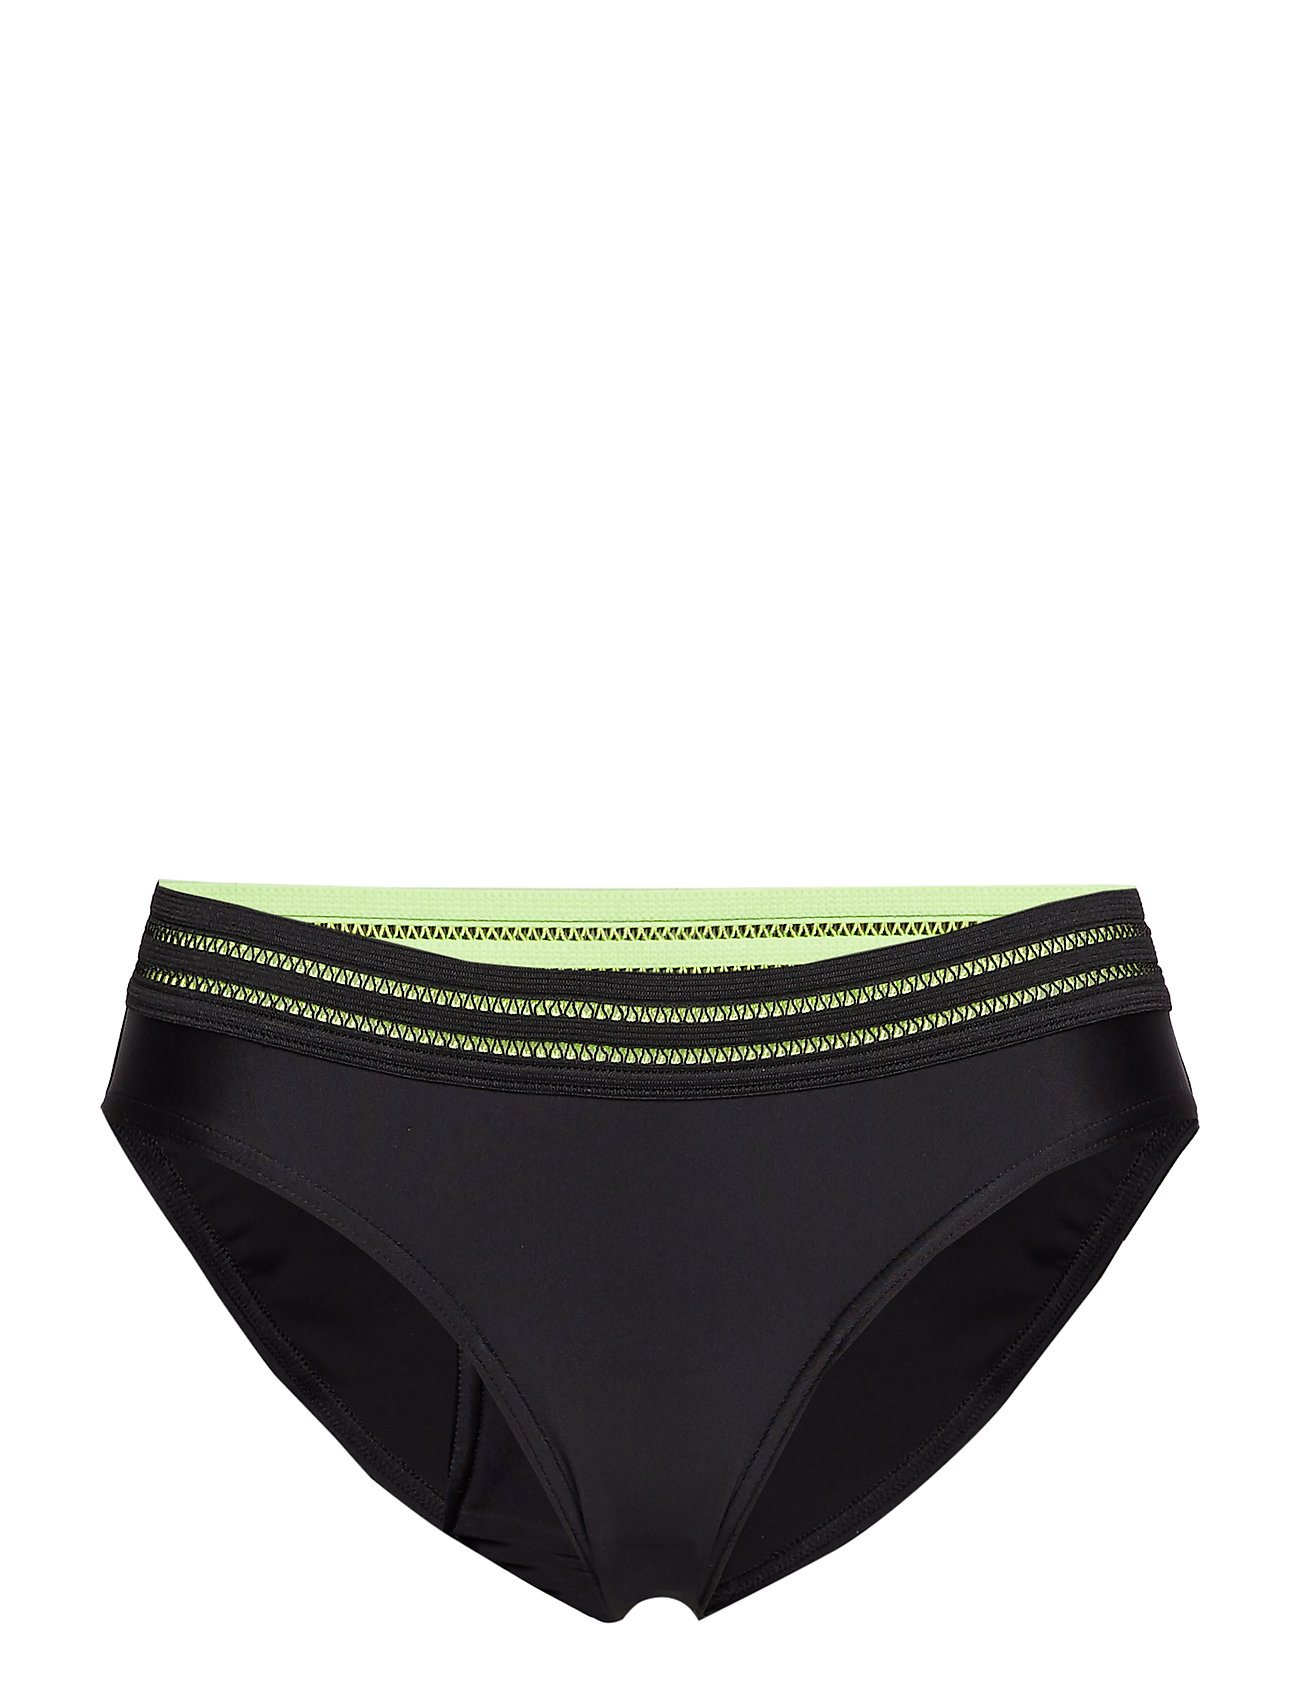 ZestSpeedo Sports BriefblackBright Reflect Reflect Wave WBroxdCe